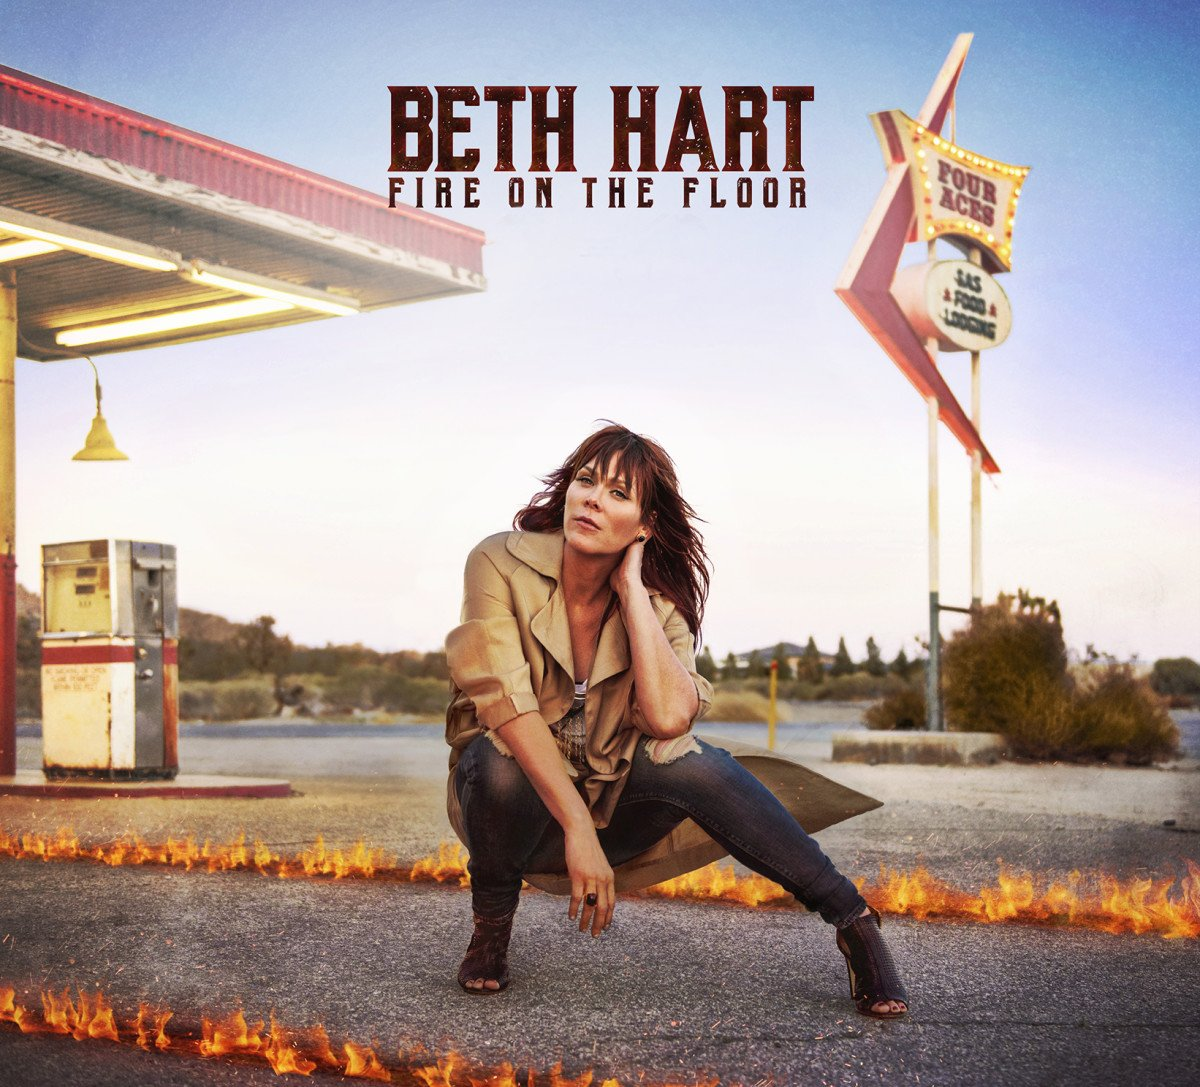 Beth Hart - Fire on the Floor [2016]